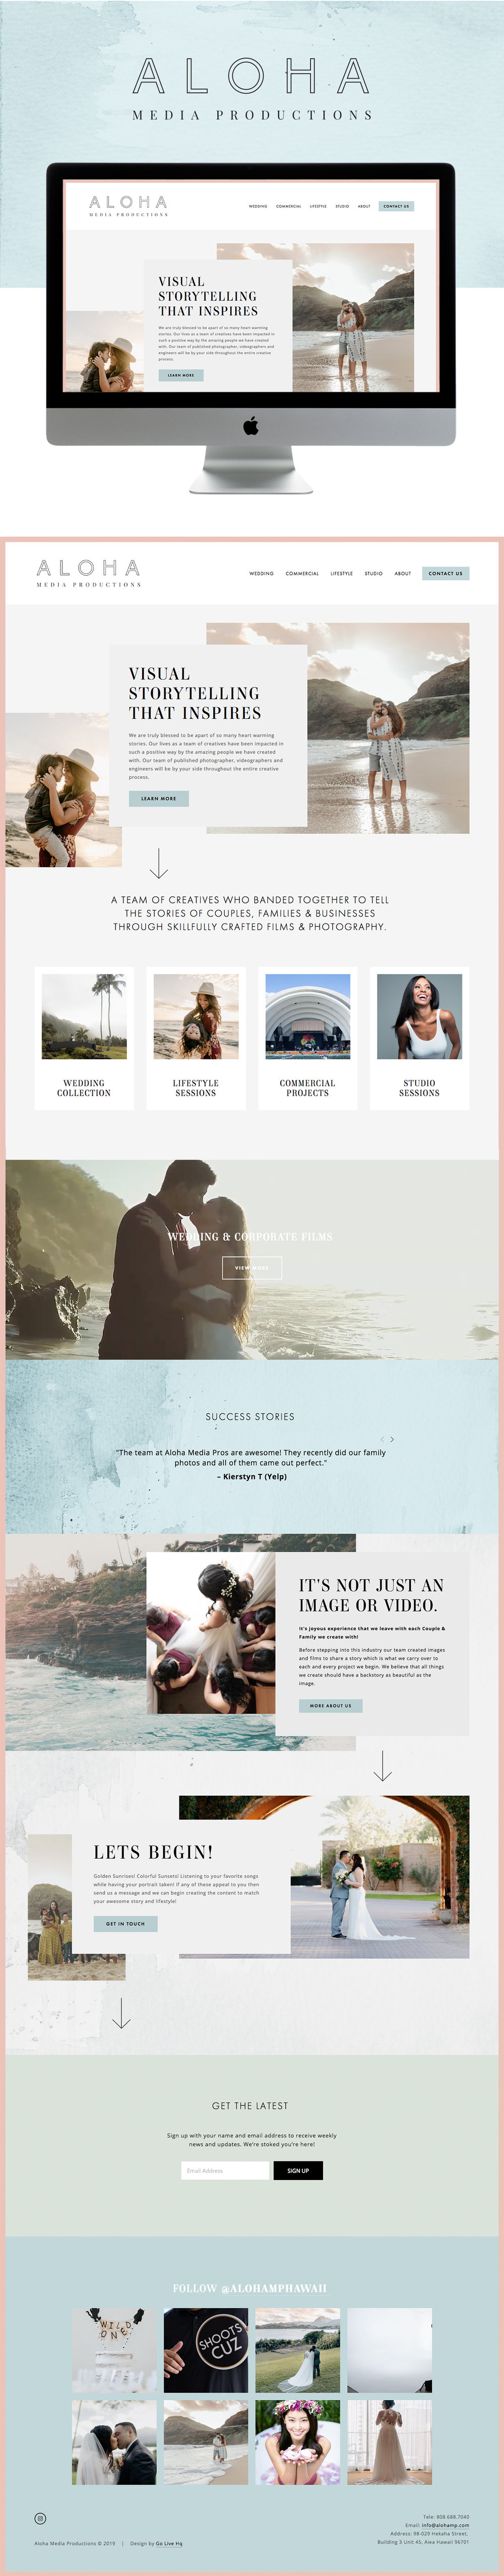 Colorful, Fun, and Modern Website Design for Hawaiian Photography / Cinematography Company | Design by Go Live HQ